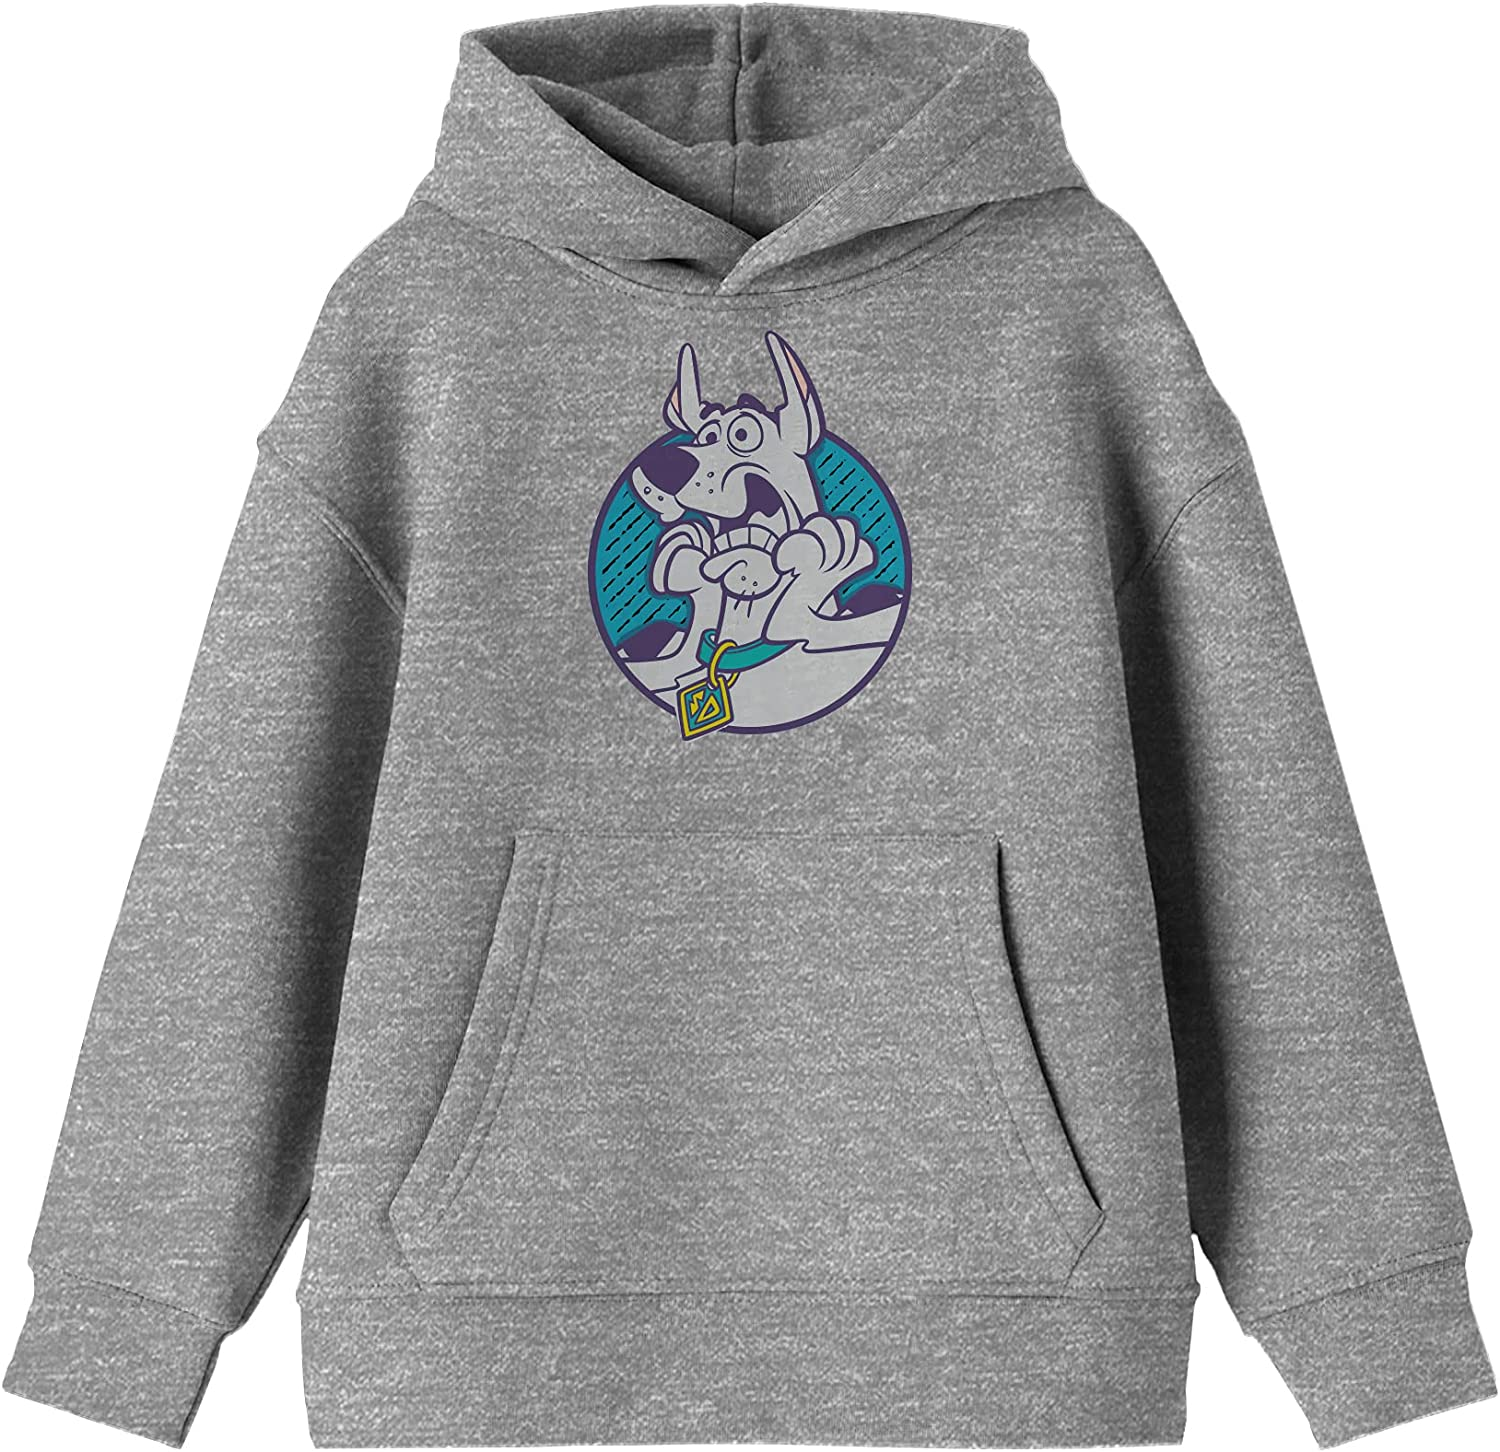 Superlatite Youth Boys Scooby Doo Character Scared Grey Max 74% OFF Hooded Heather Sweat